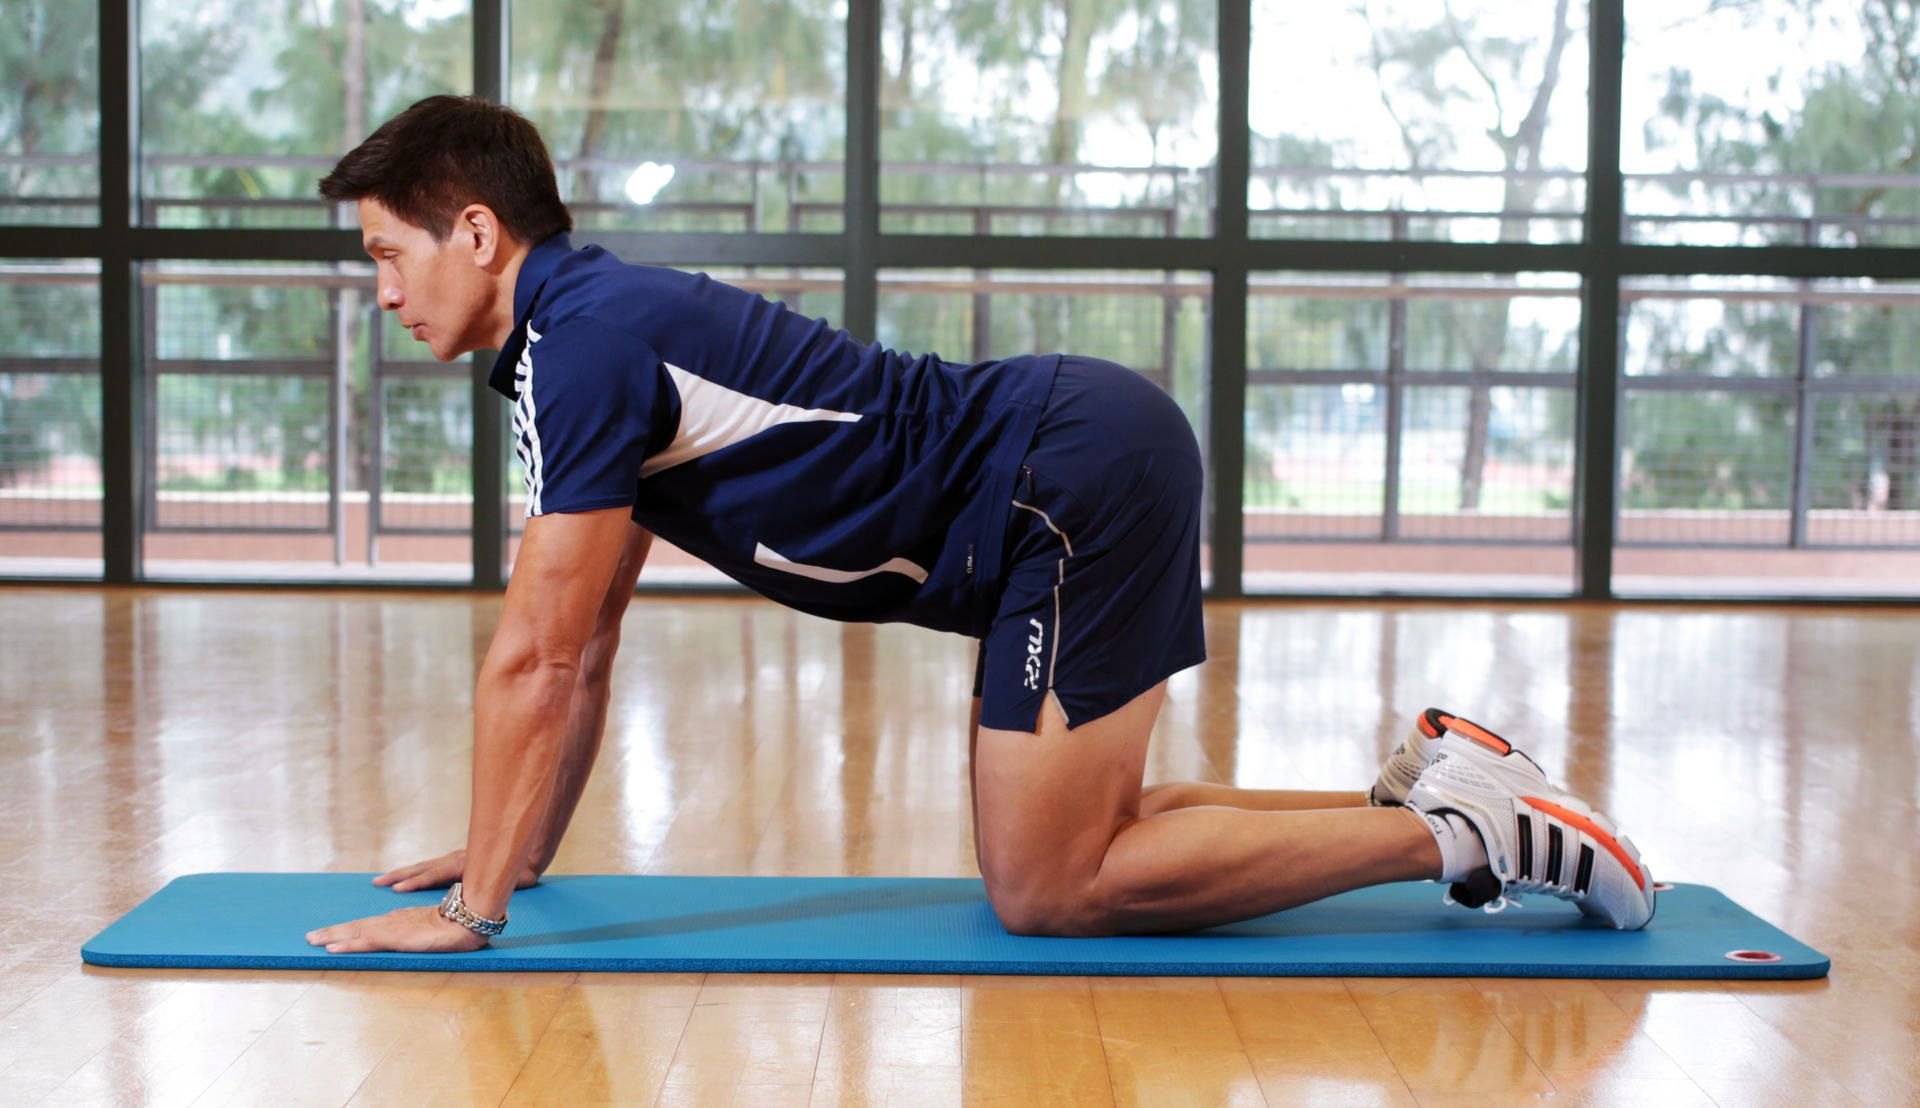 Strengthening your core back and abdominal muscles will